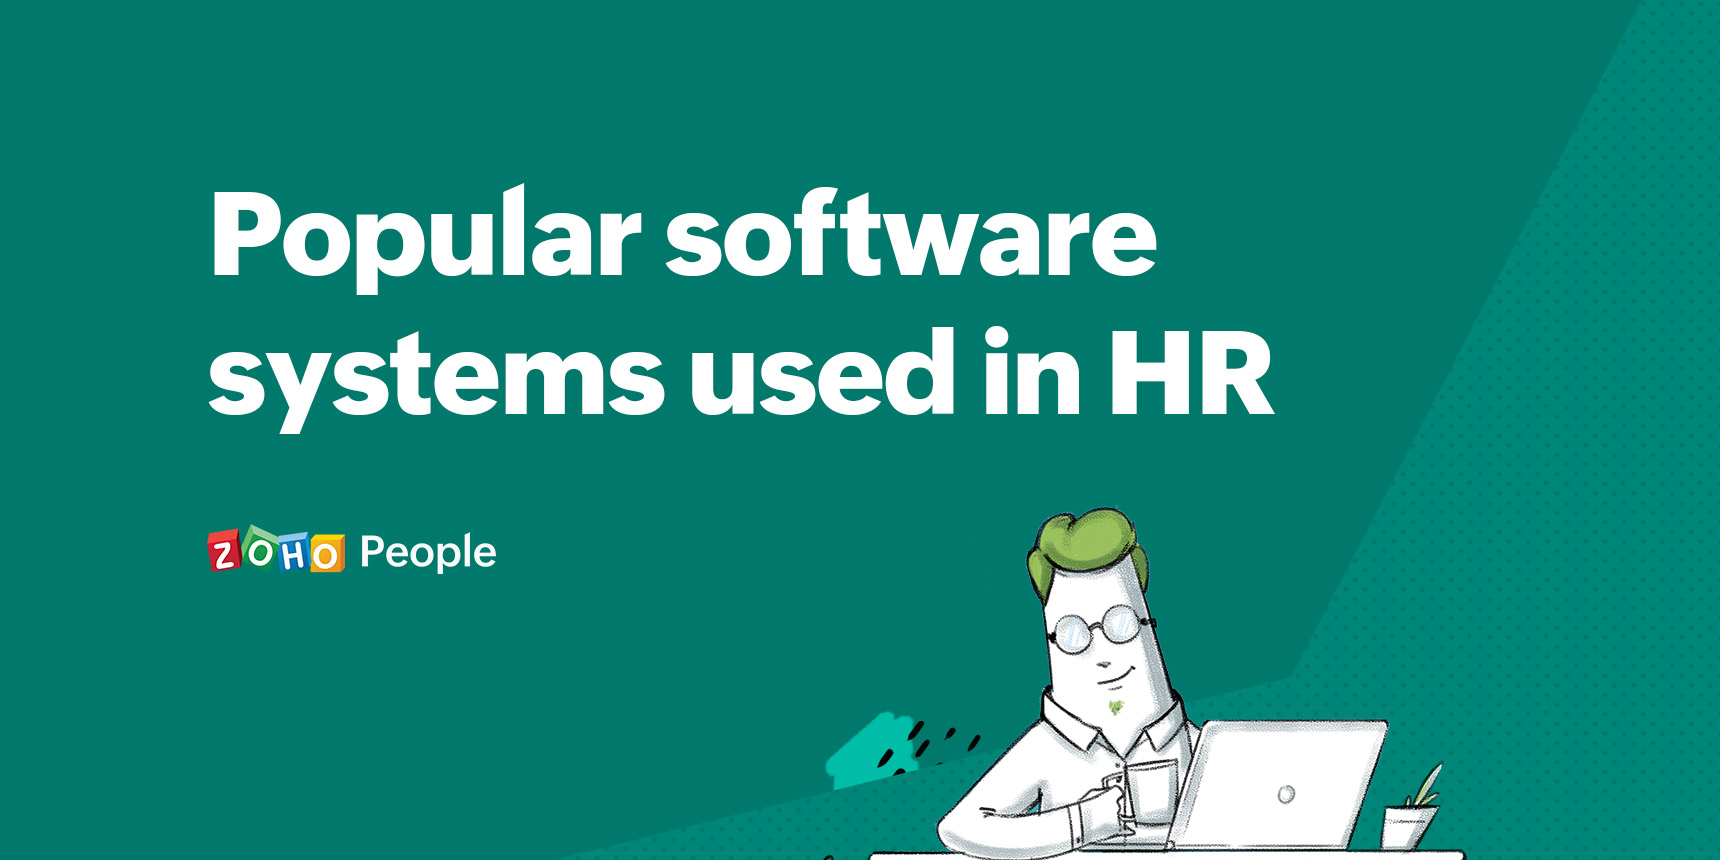 Popular software systems used by HR professionals